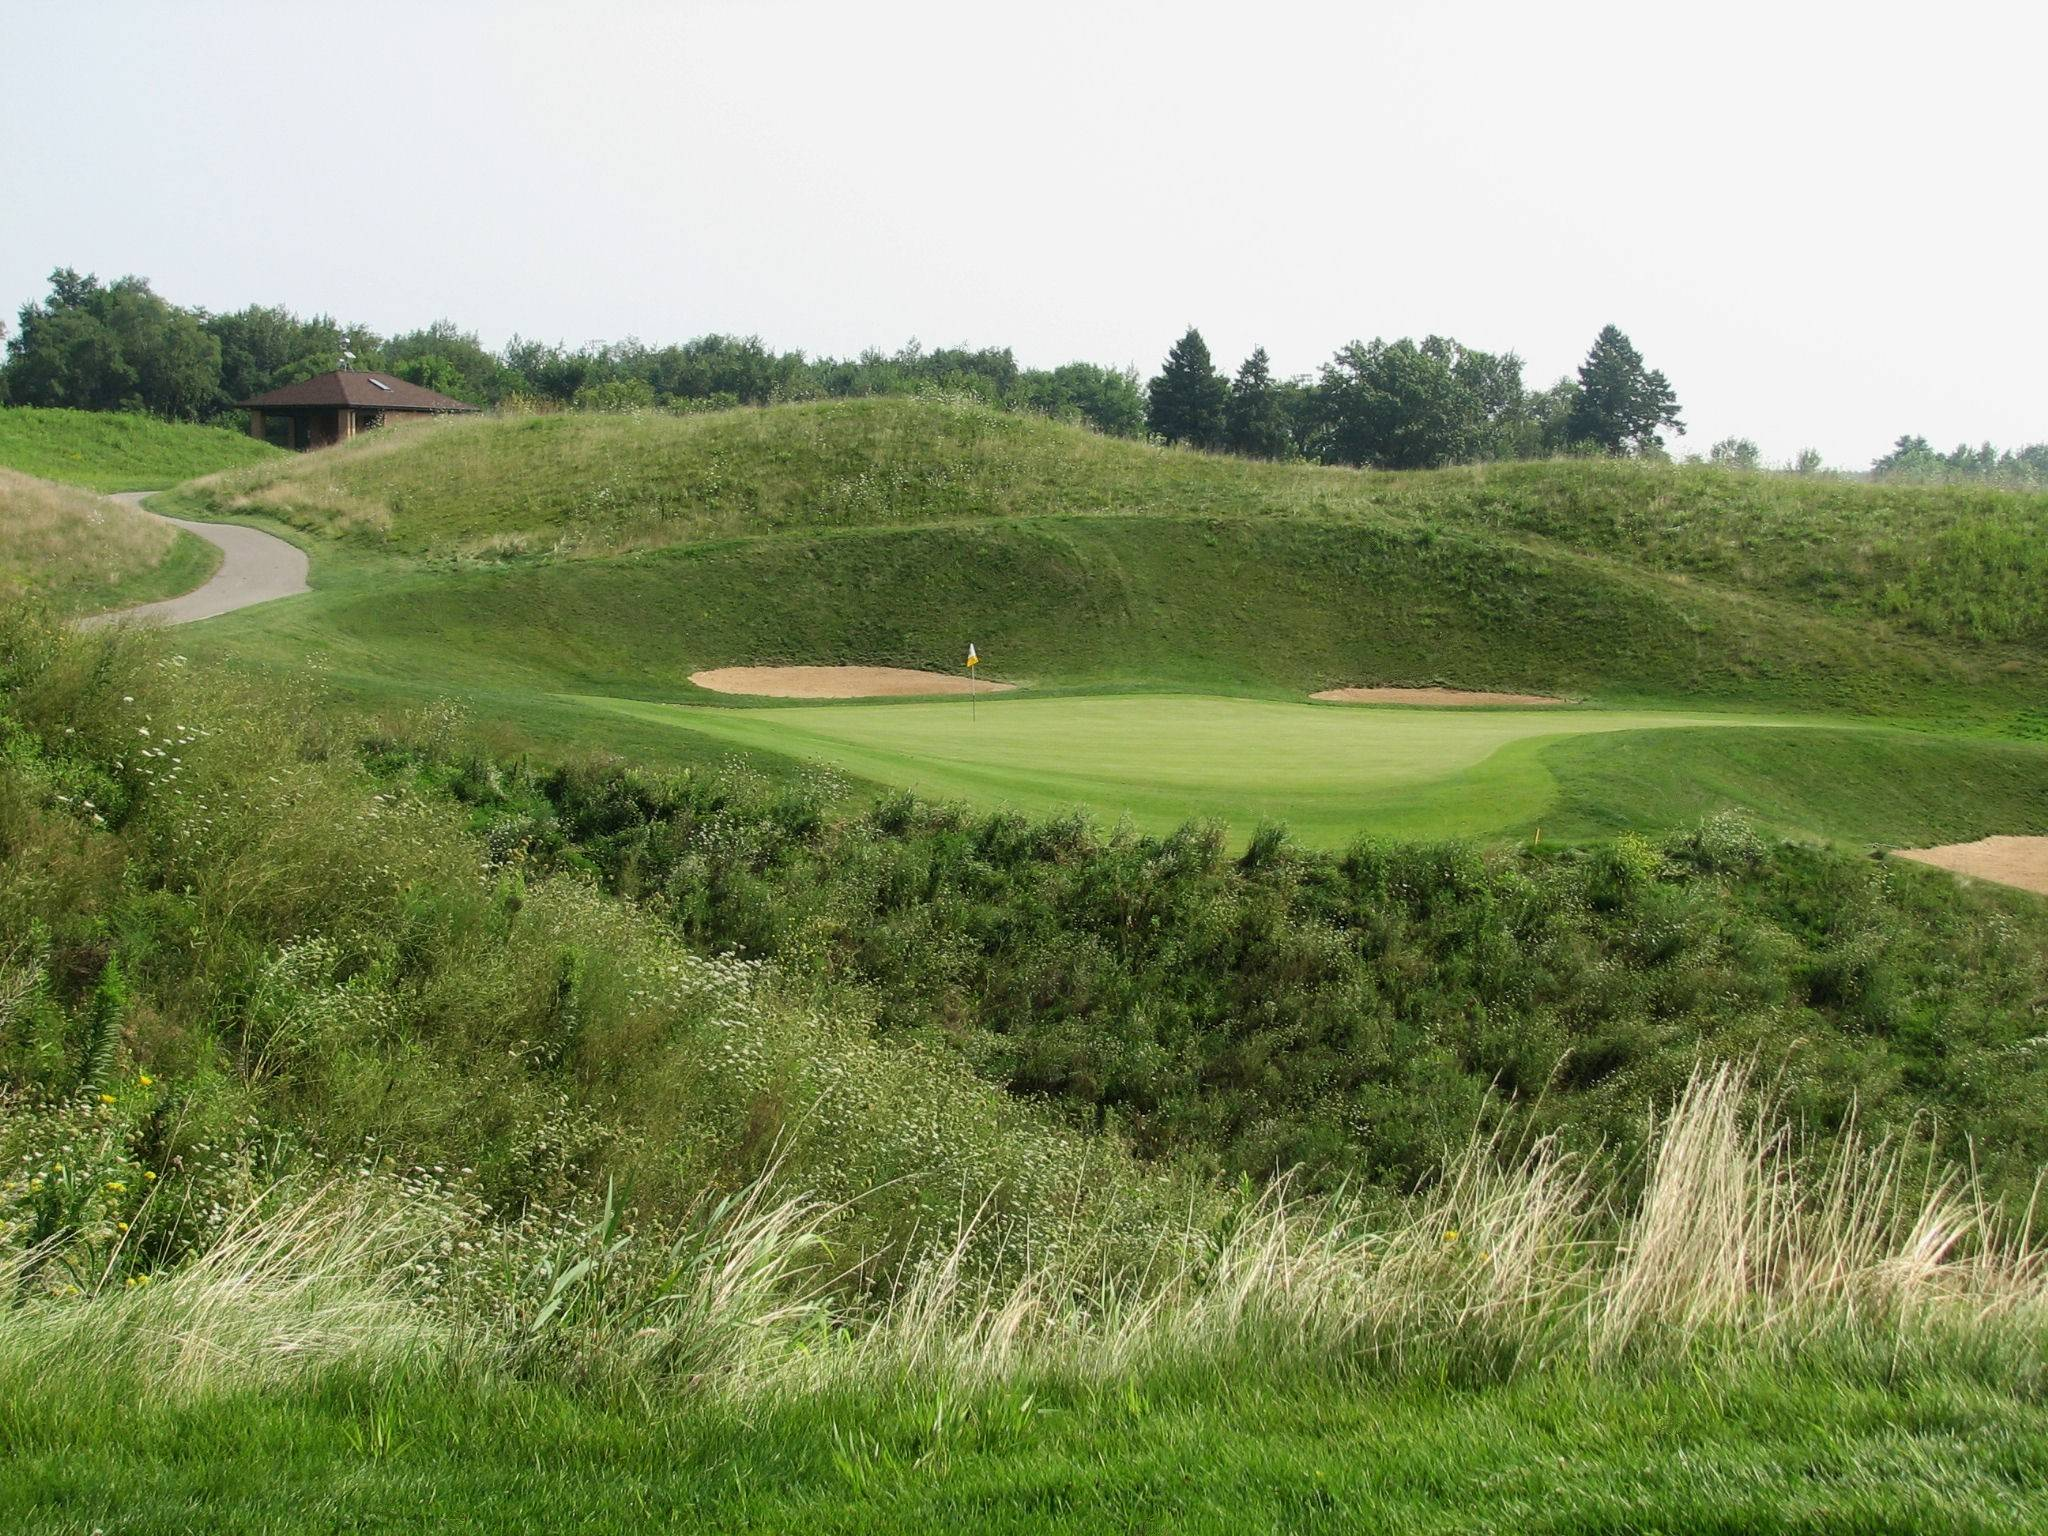 Shortest hole on our dream nine: No. 4 at Highlands of Elgin. But you can pay a steep price for shots that miss the green.